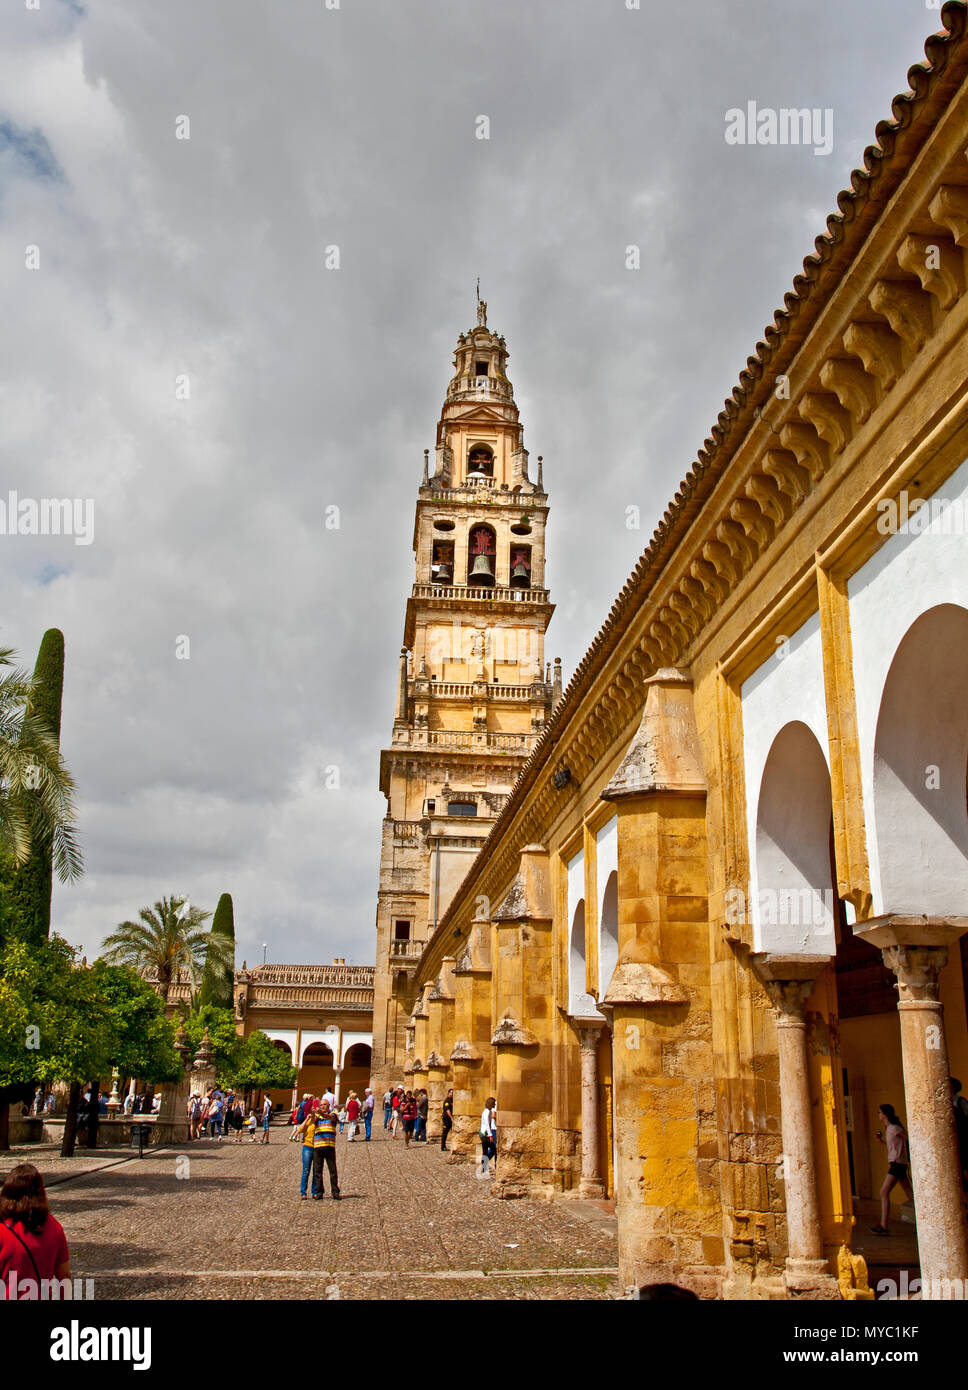 May 28, 2016- Cordoba, Spain: the landmark bell tower at the cathedral mosque in spanish cordoba with tourists in courtyard Stock Photo